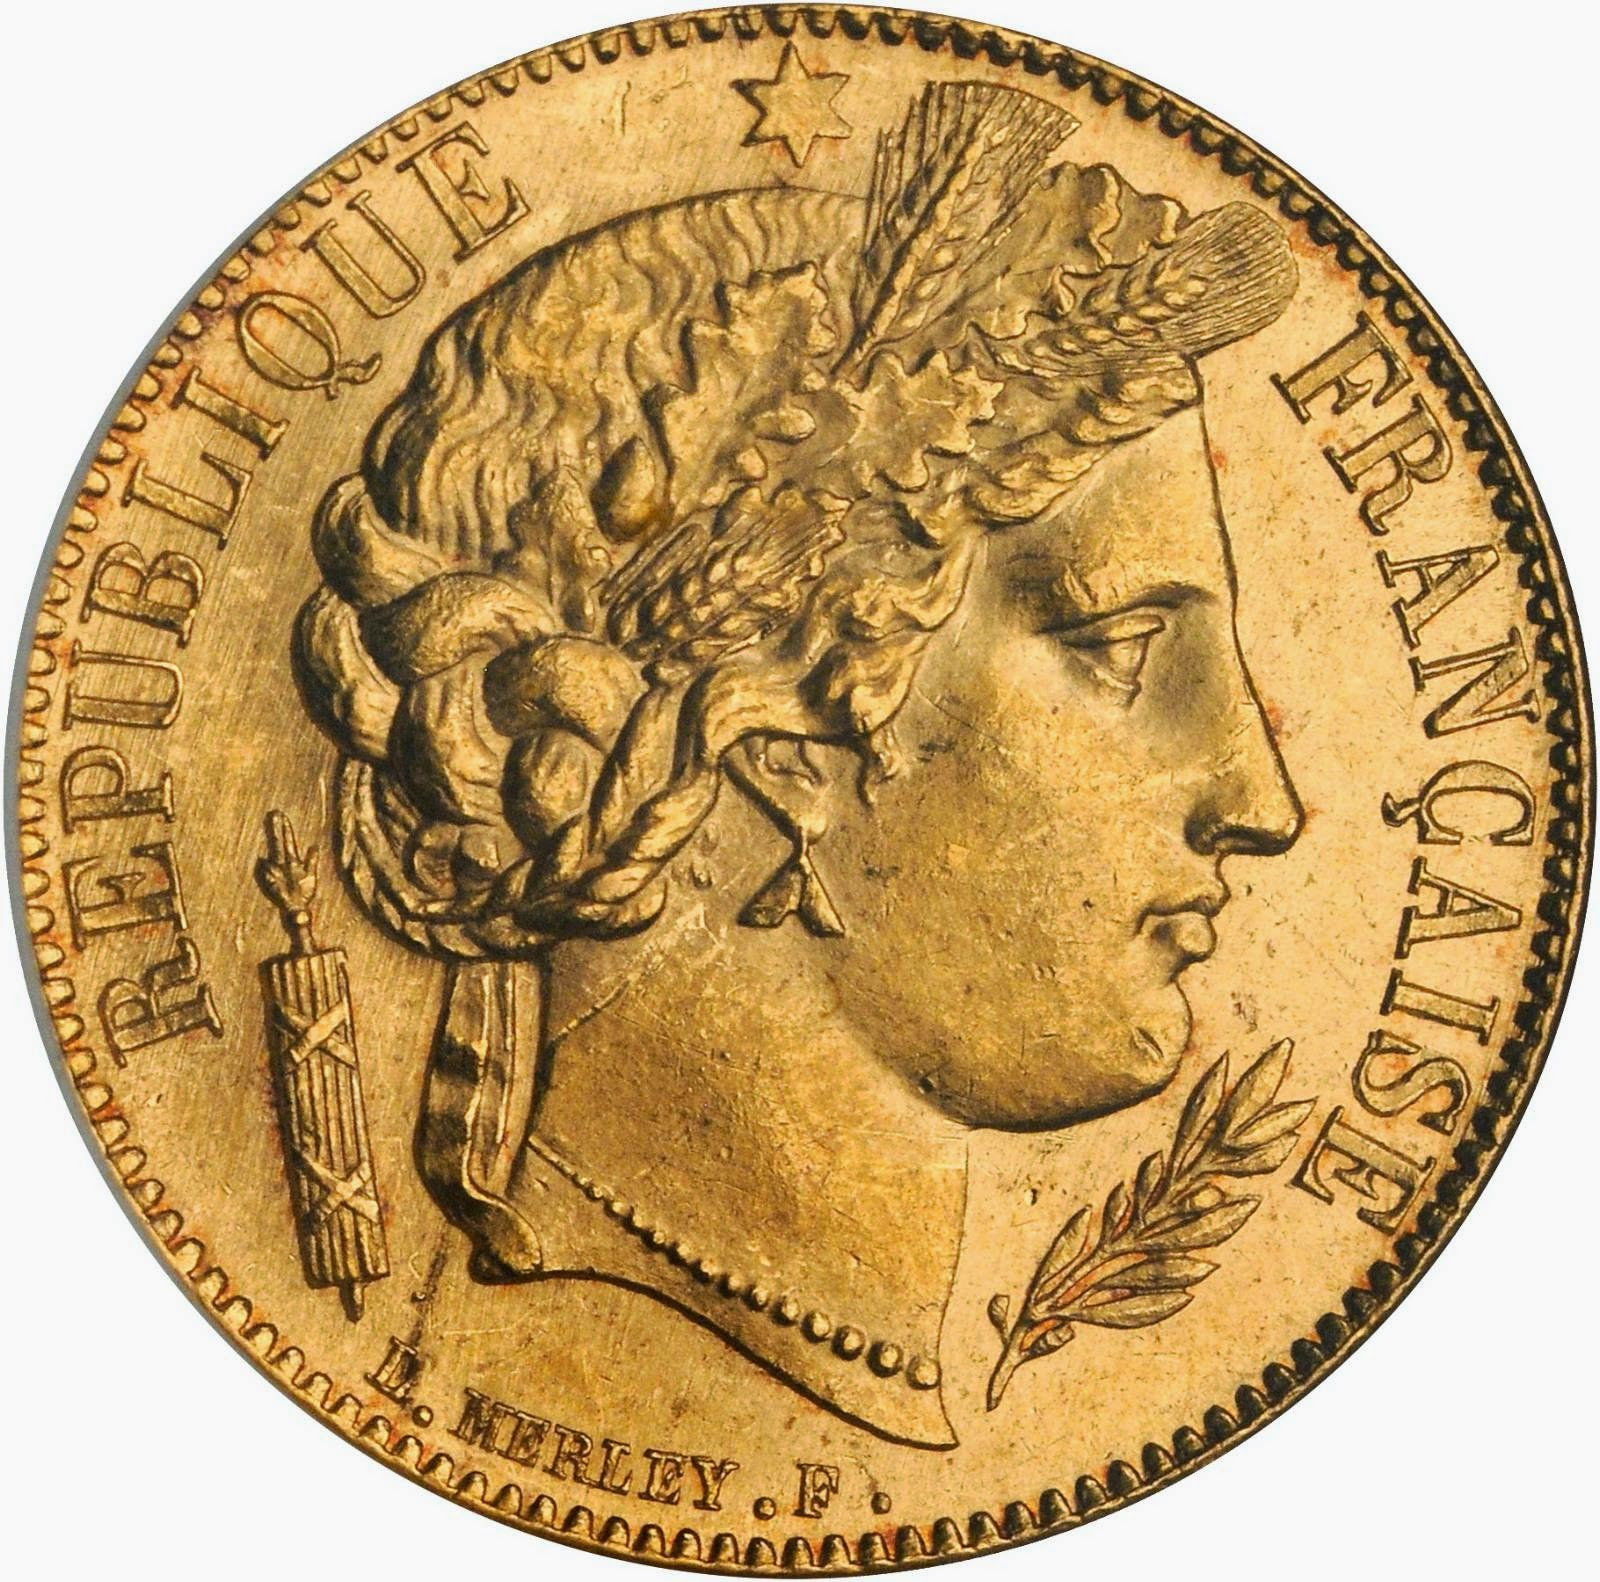 French Gold 20 Francs Coin 1850 Ceres